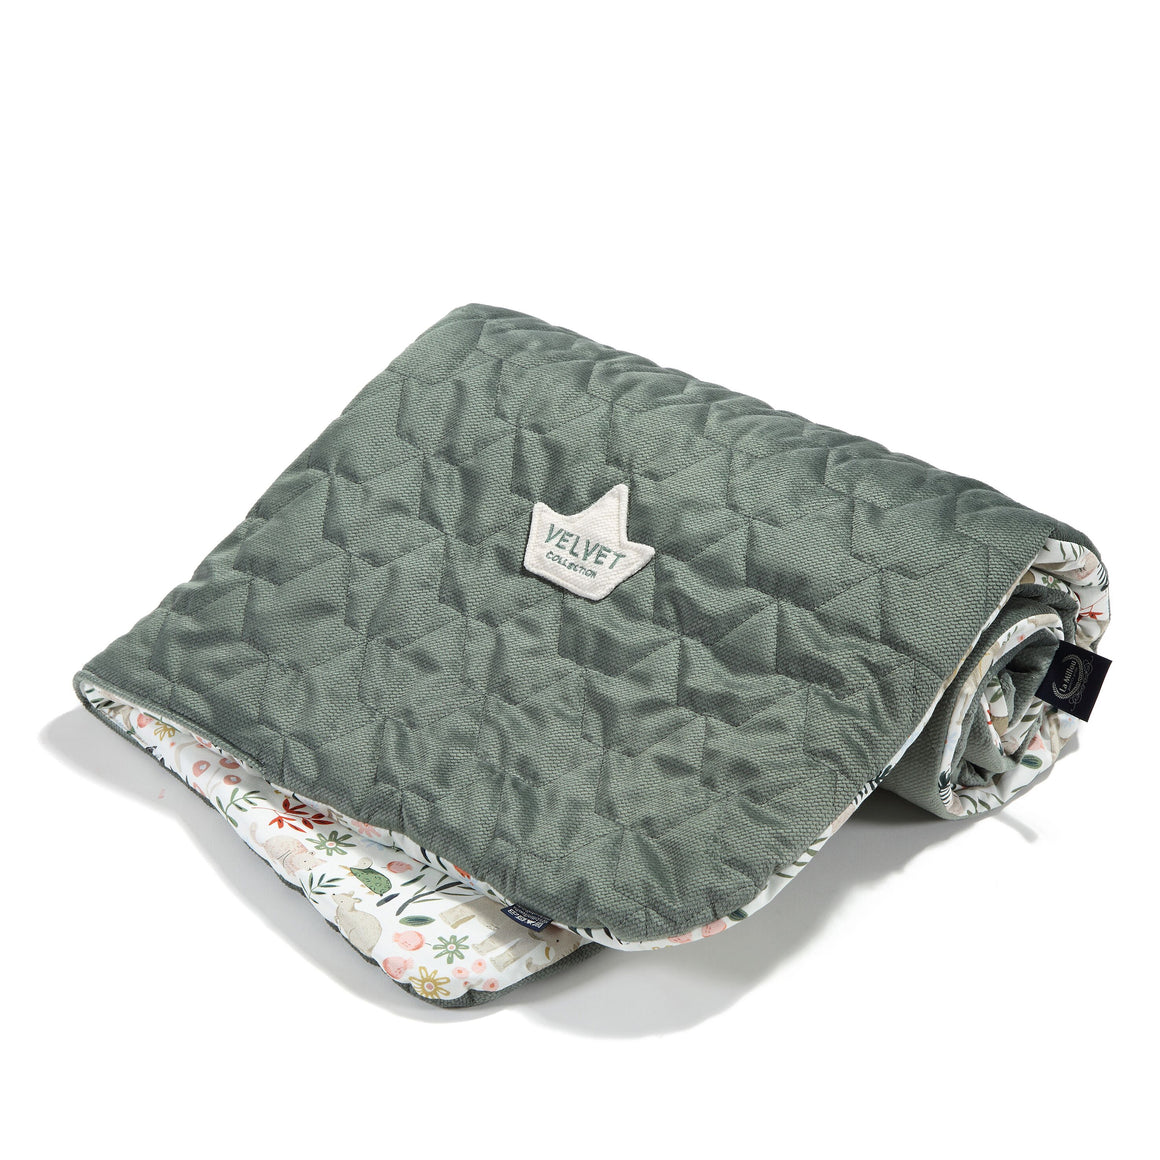 MEDIUM BLANKET - La Millou Zoo | Velvet Khaki